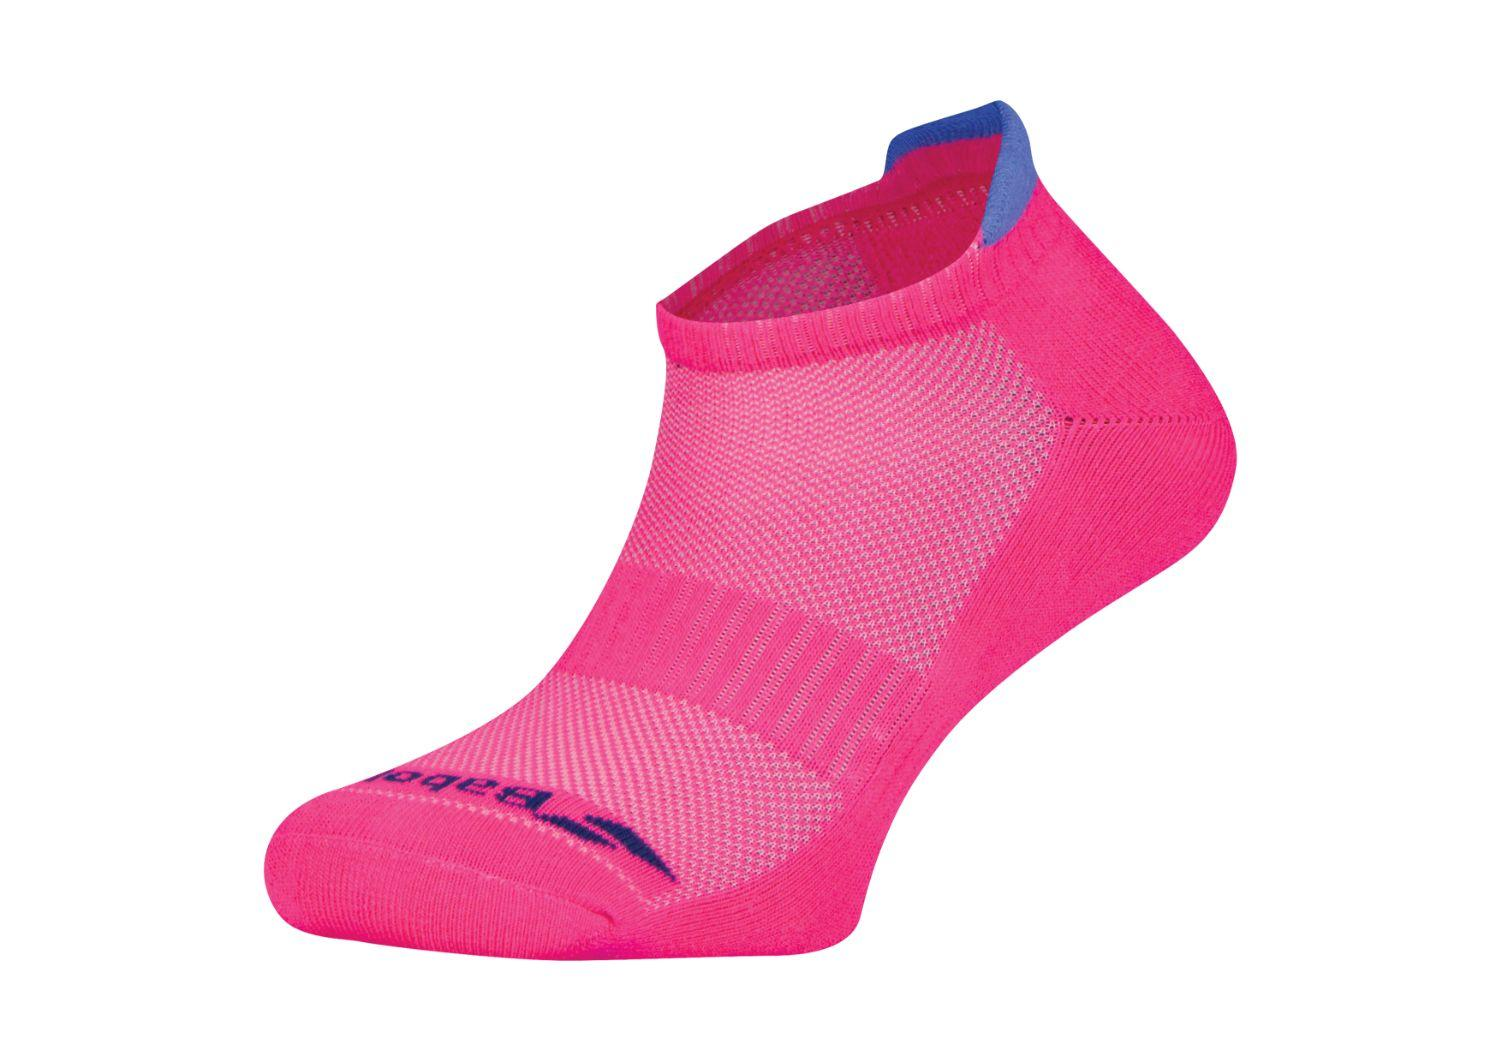 Calcetines Invisible Babolat rosa